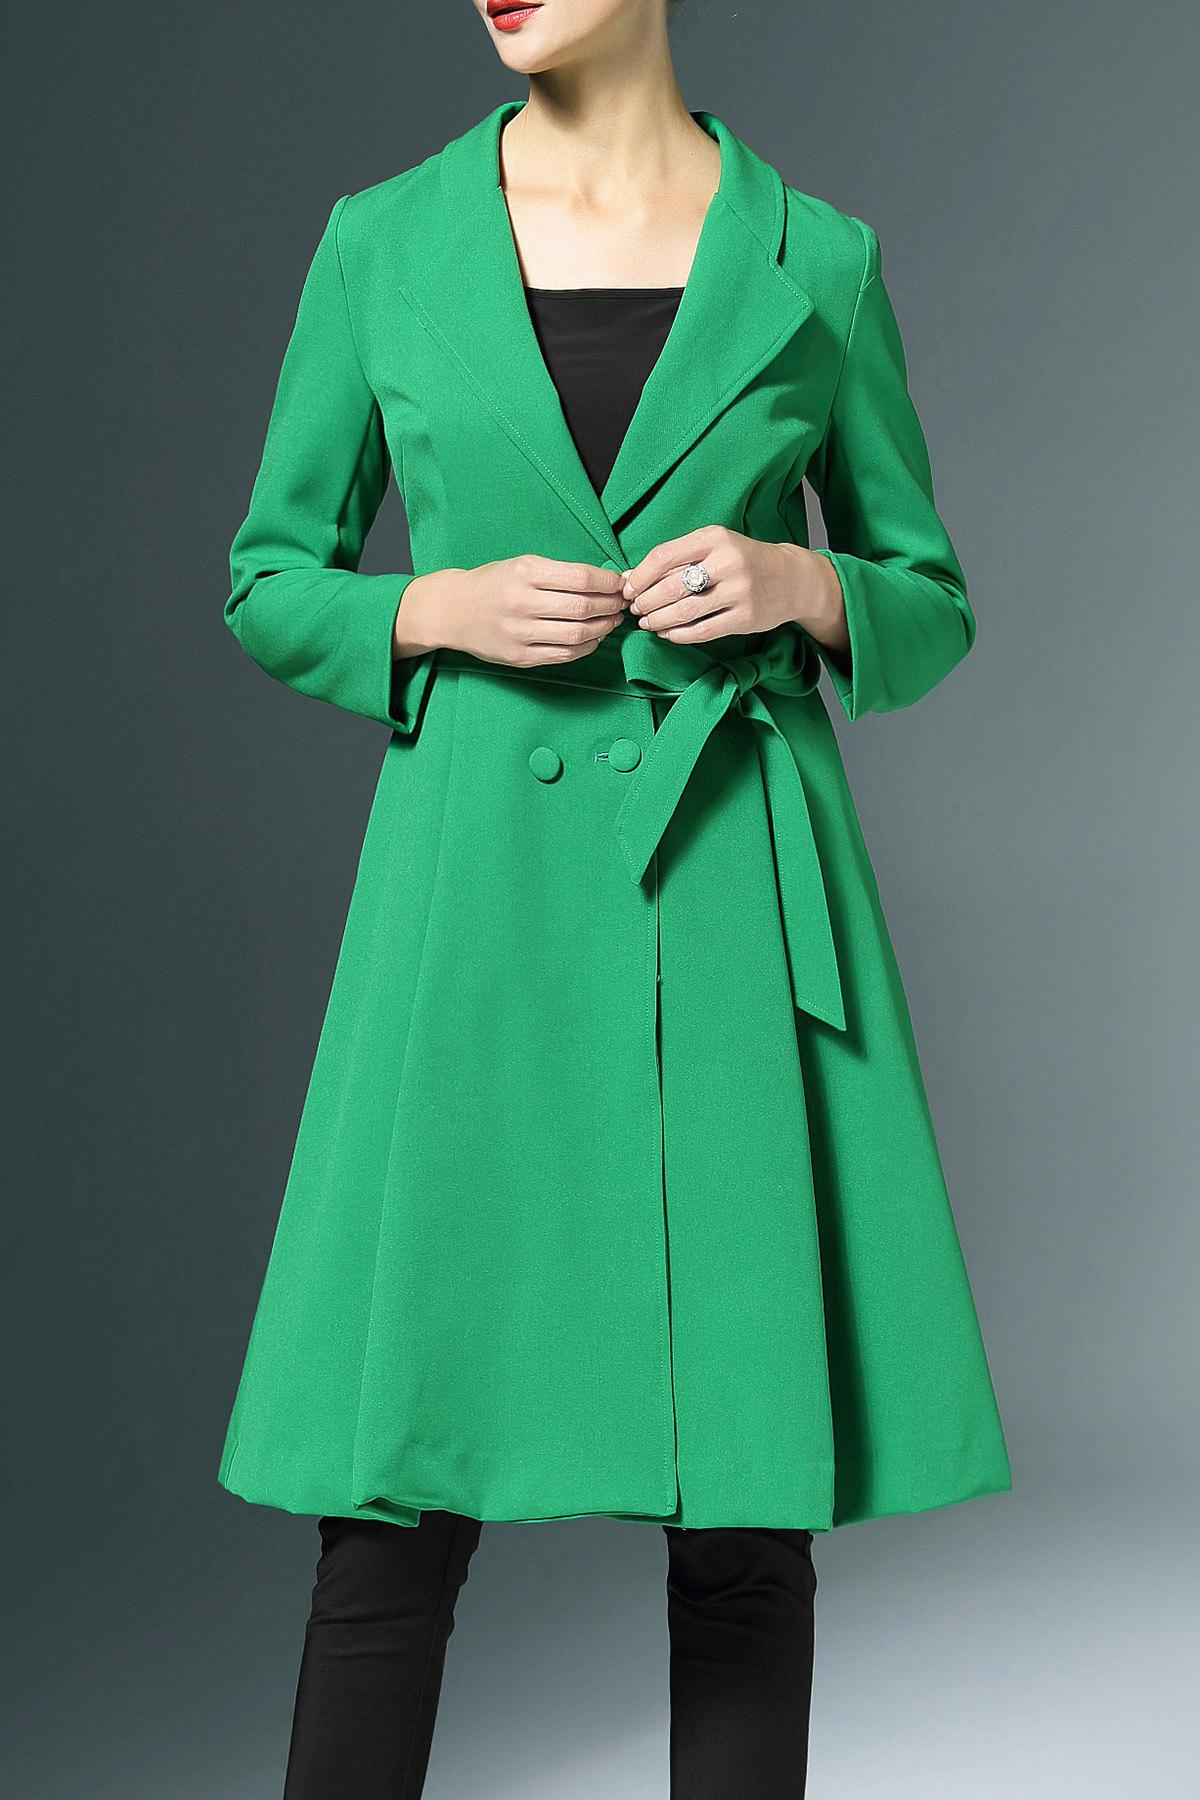 Bowknot Double-Breasted Trench Coat - GREEN M